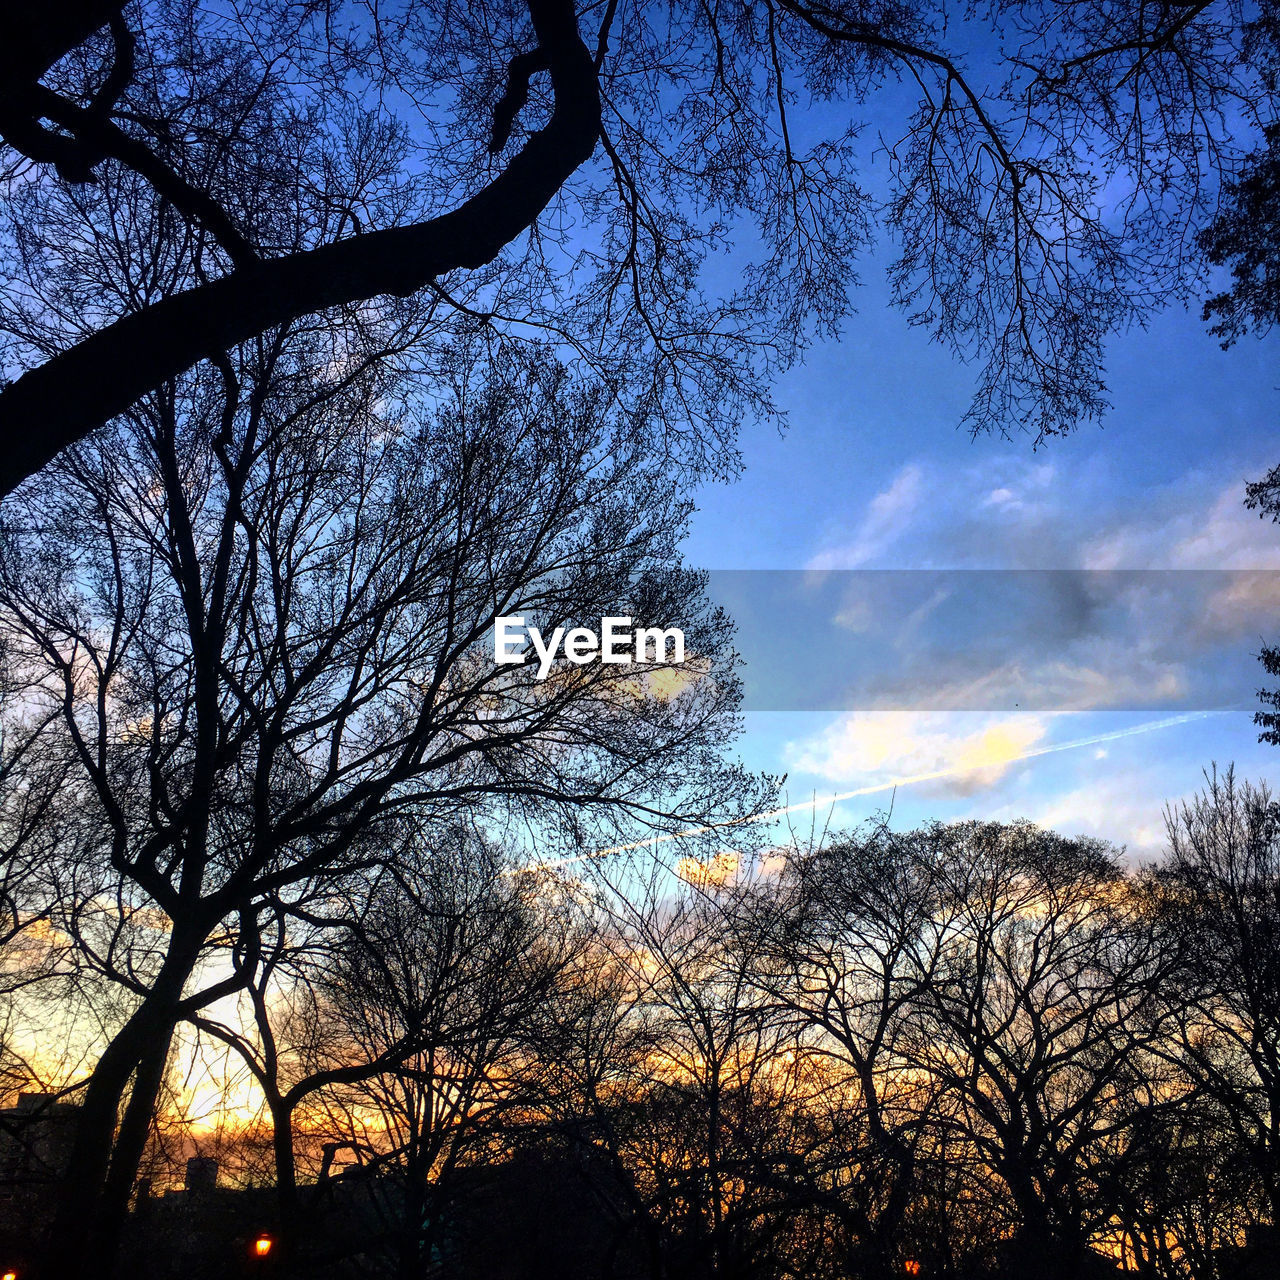 tree, bare tree, branch, sky, beauty in nature, low angle view, nature, silhouette, tranquility, tranquil scene, scenics, outdoors, cloud - sky, no people, day, growth